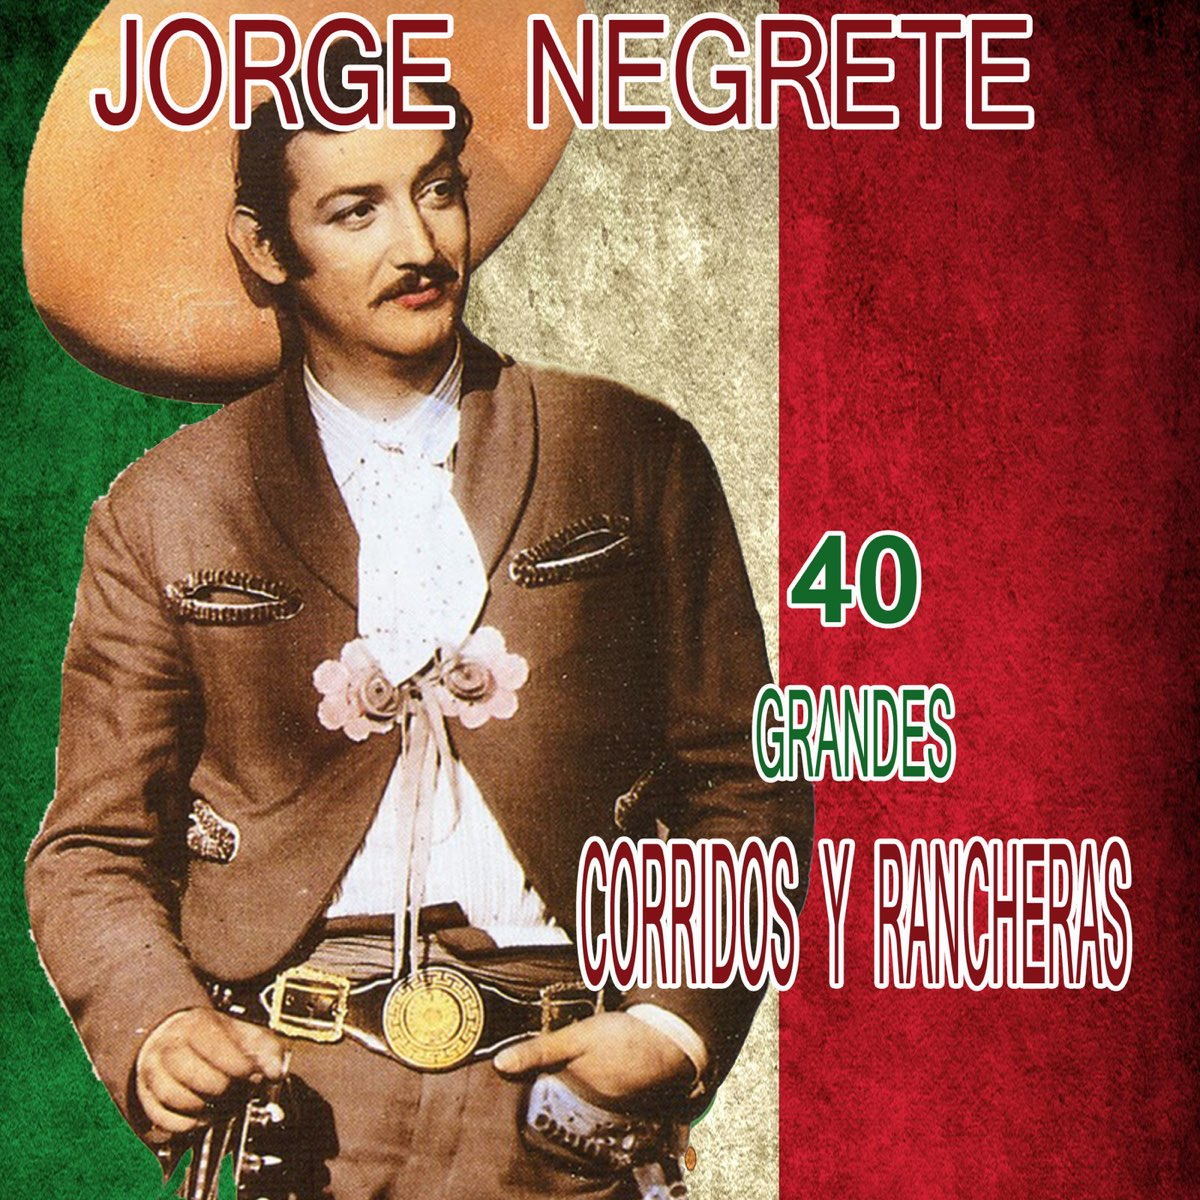 40 Grandes Corridos Y Rancheras By Jorge Negrete On Apple Music